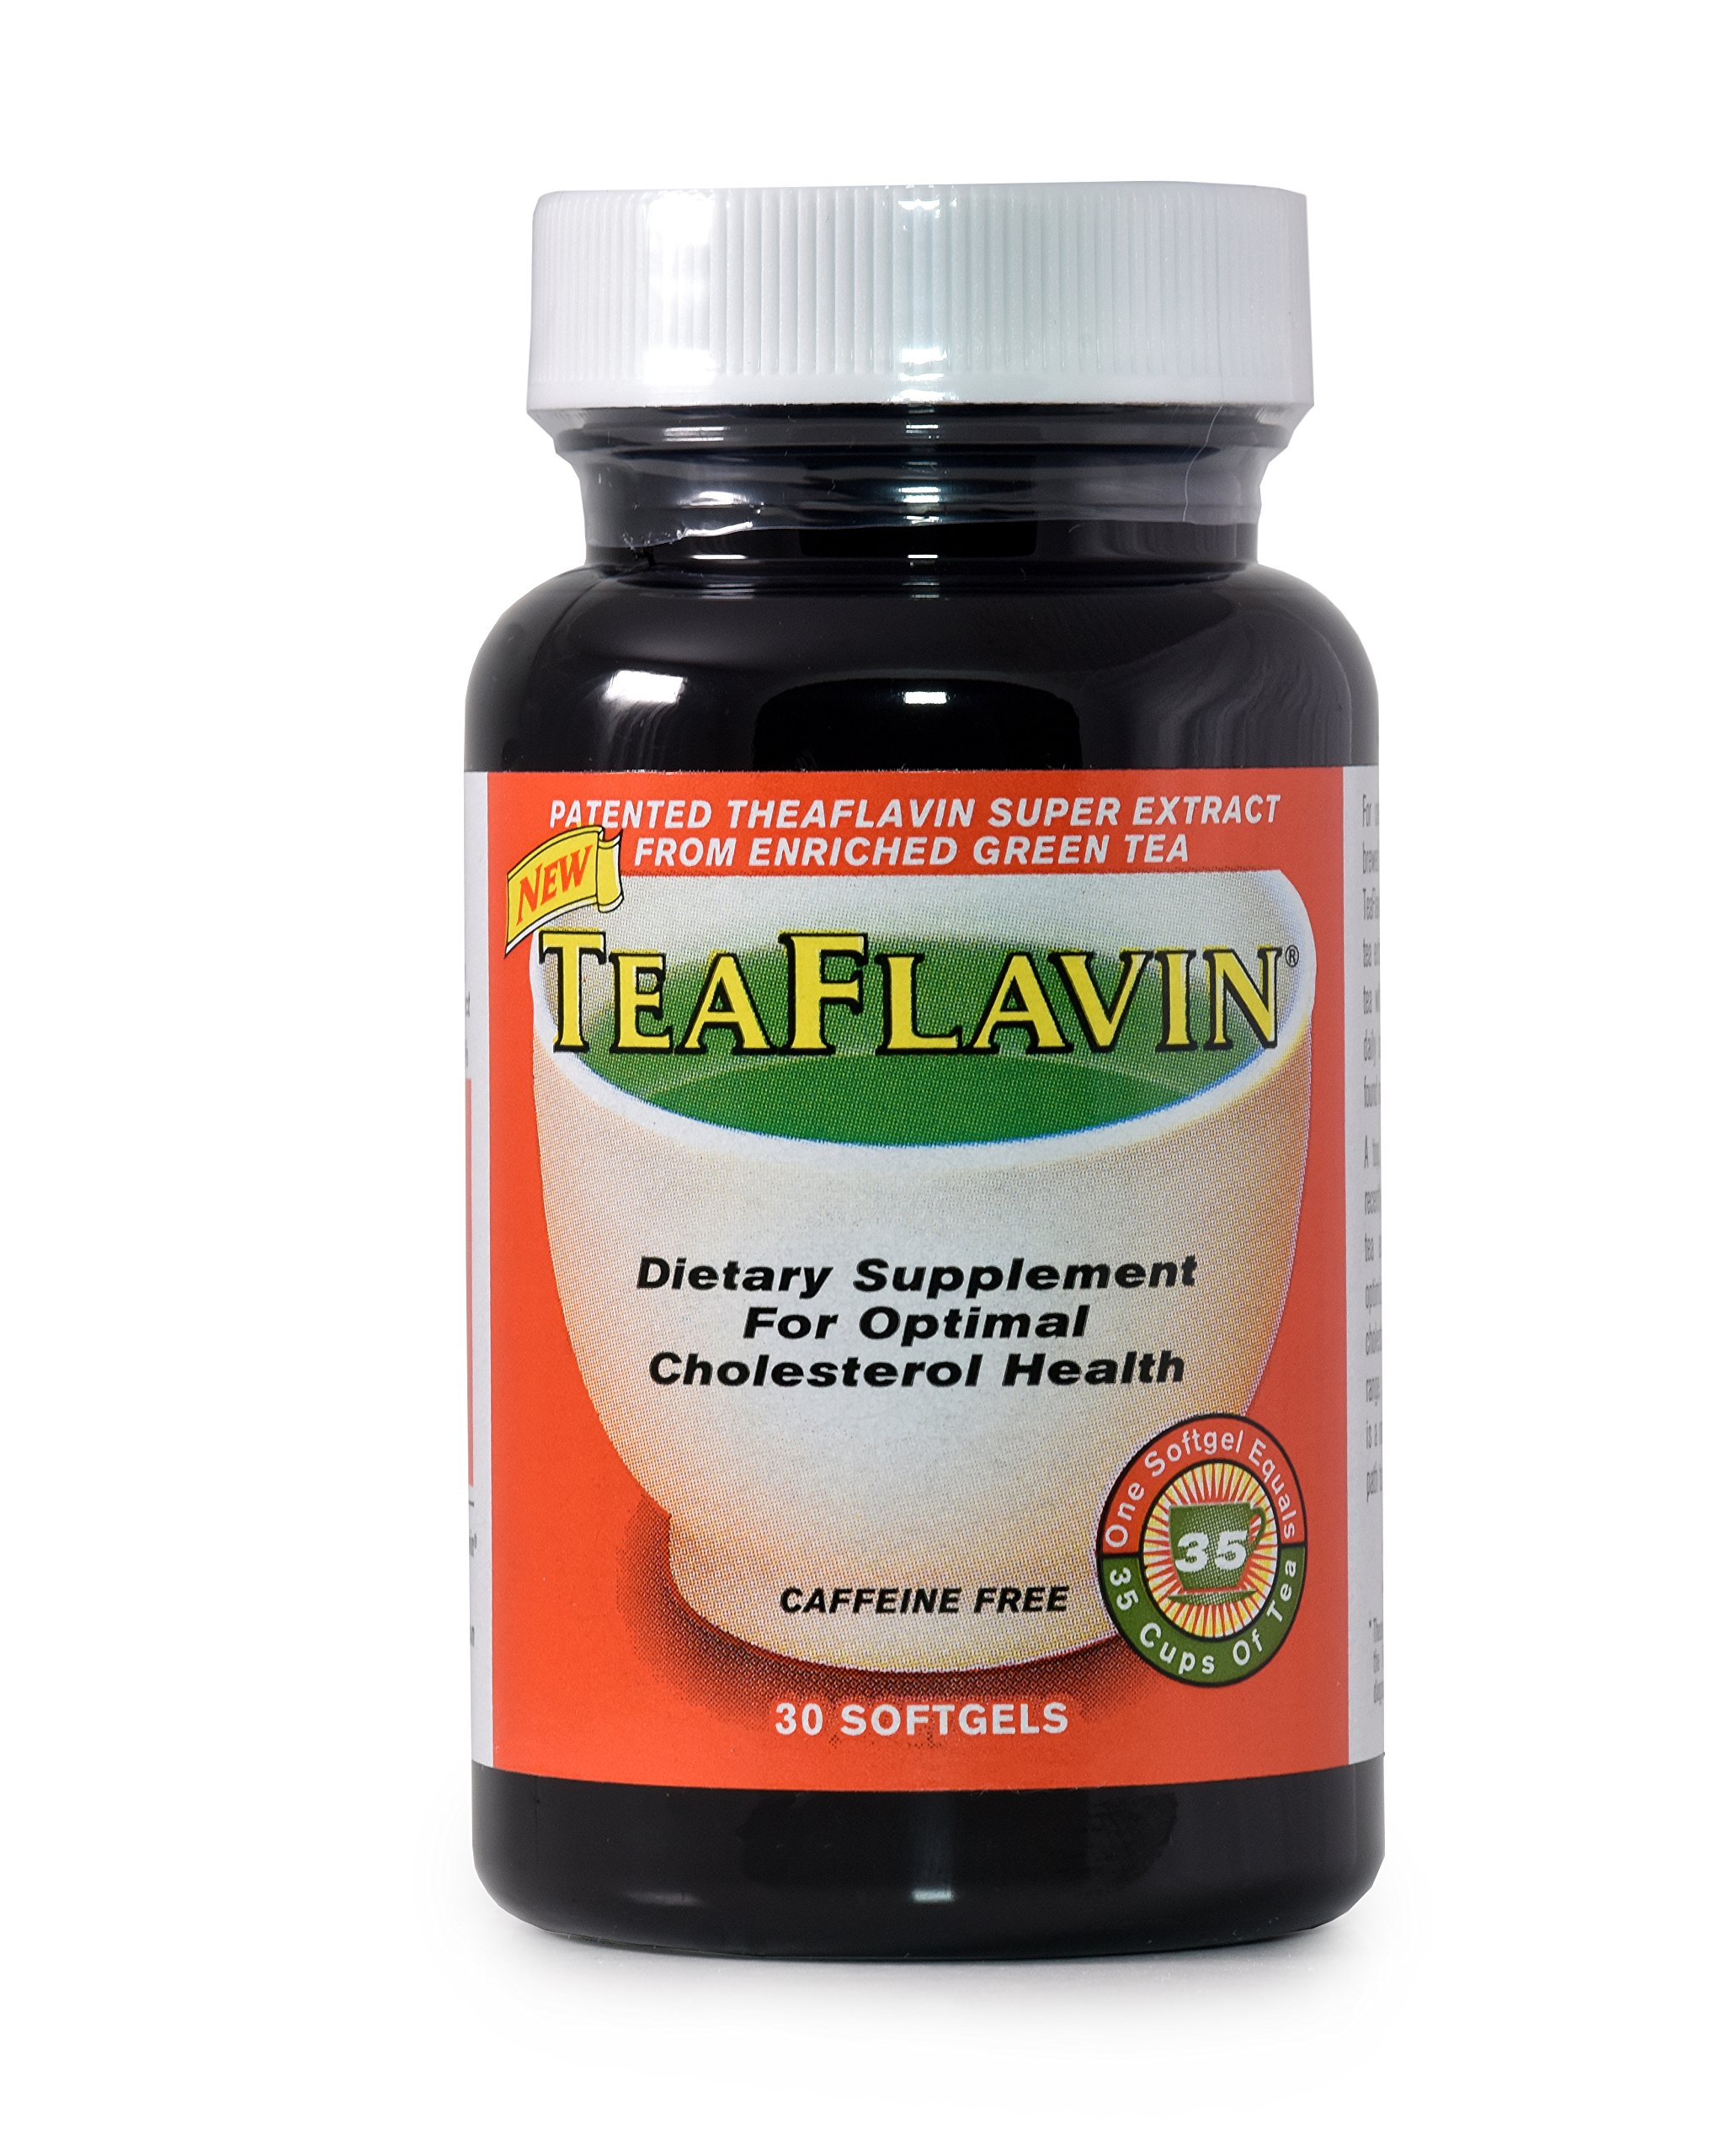 Green Tea Extract immune system support supplements, weight loss, Reduces Cholesterol, Natural Energy & Caffeine Free with Theaflavins - 1 Capsule = 35 Cups of Green Tea (30 Capsules / 1 month supply)